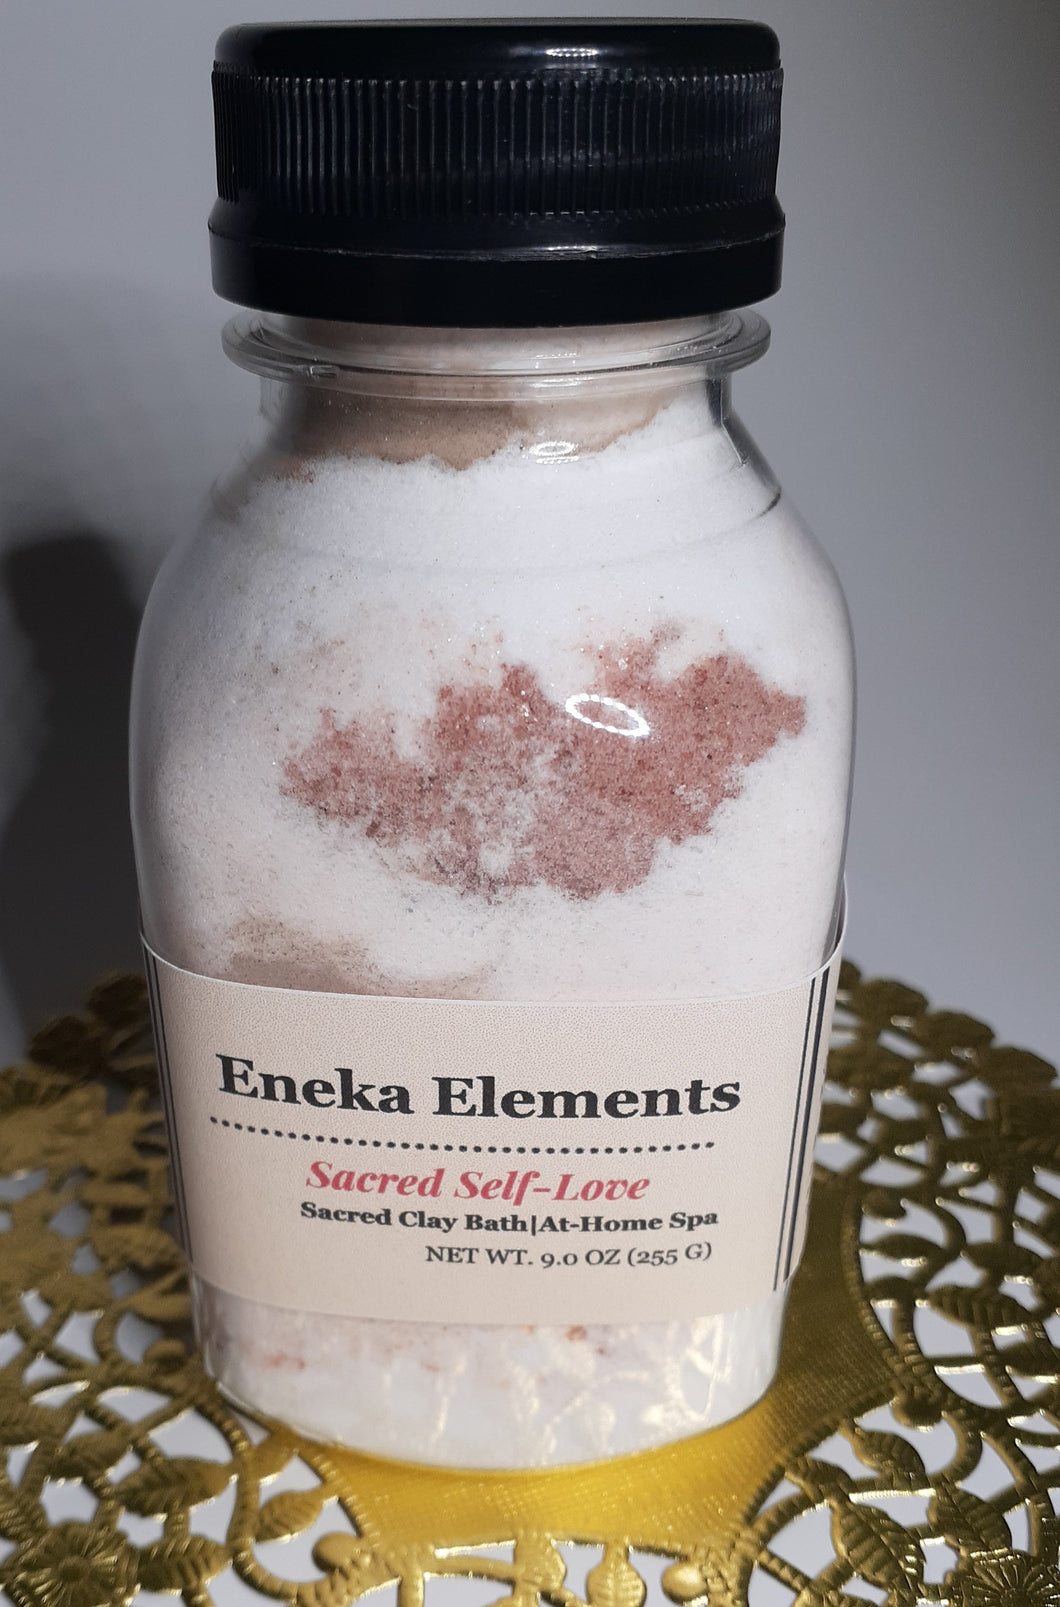 Sacred Self Love Clay Bath by Eneka Elements